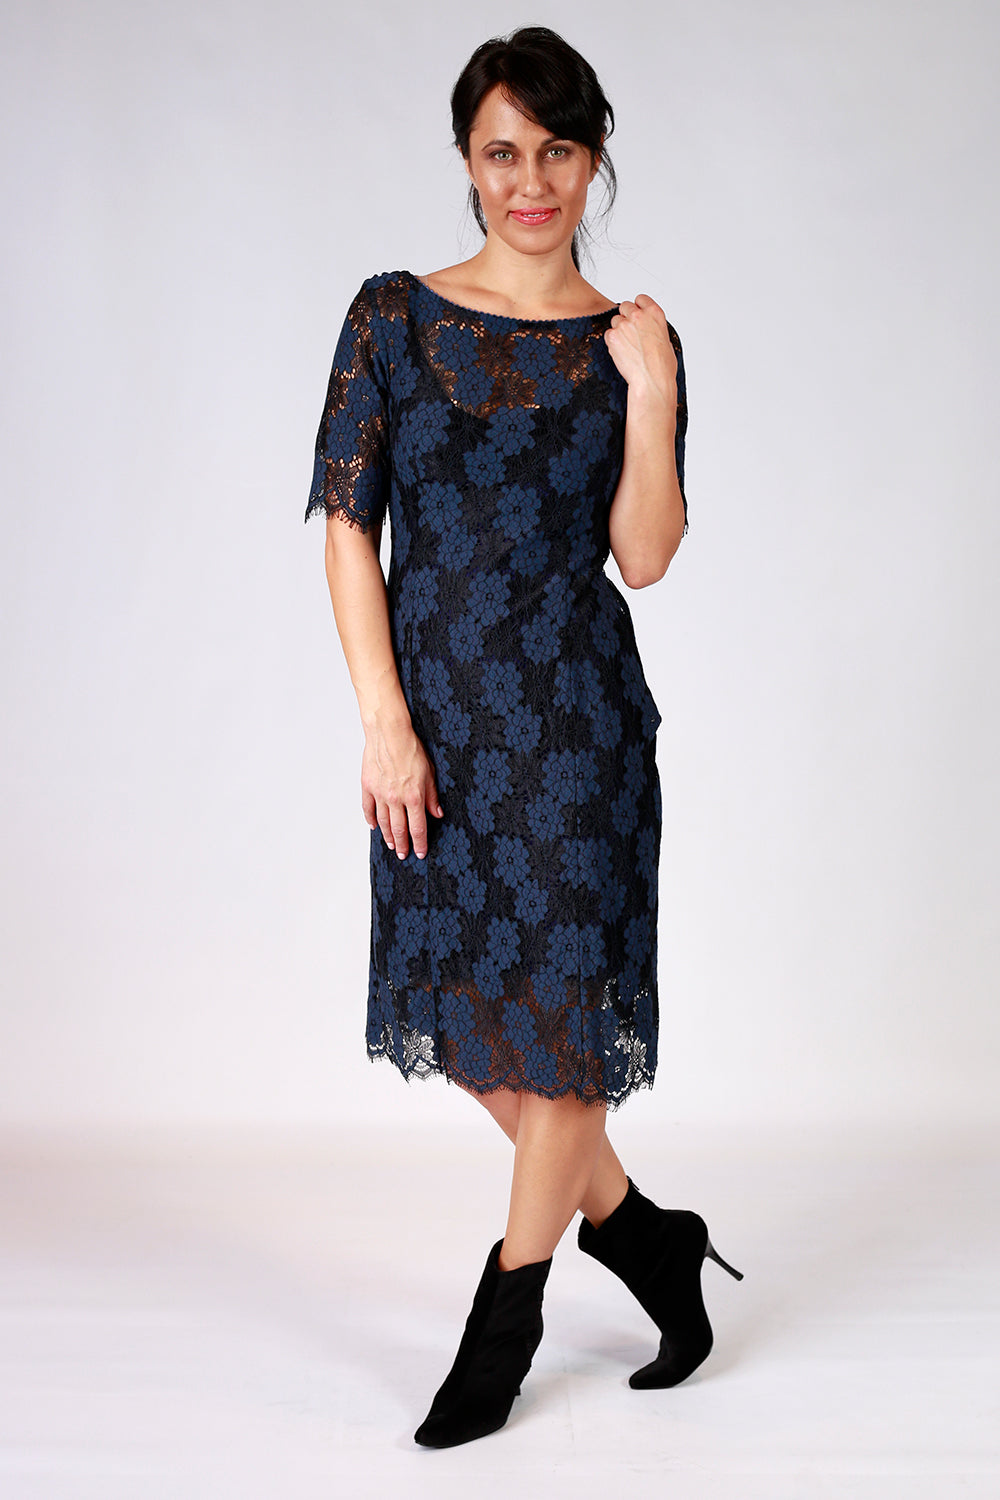 Aleena Lulu Lace Dress